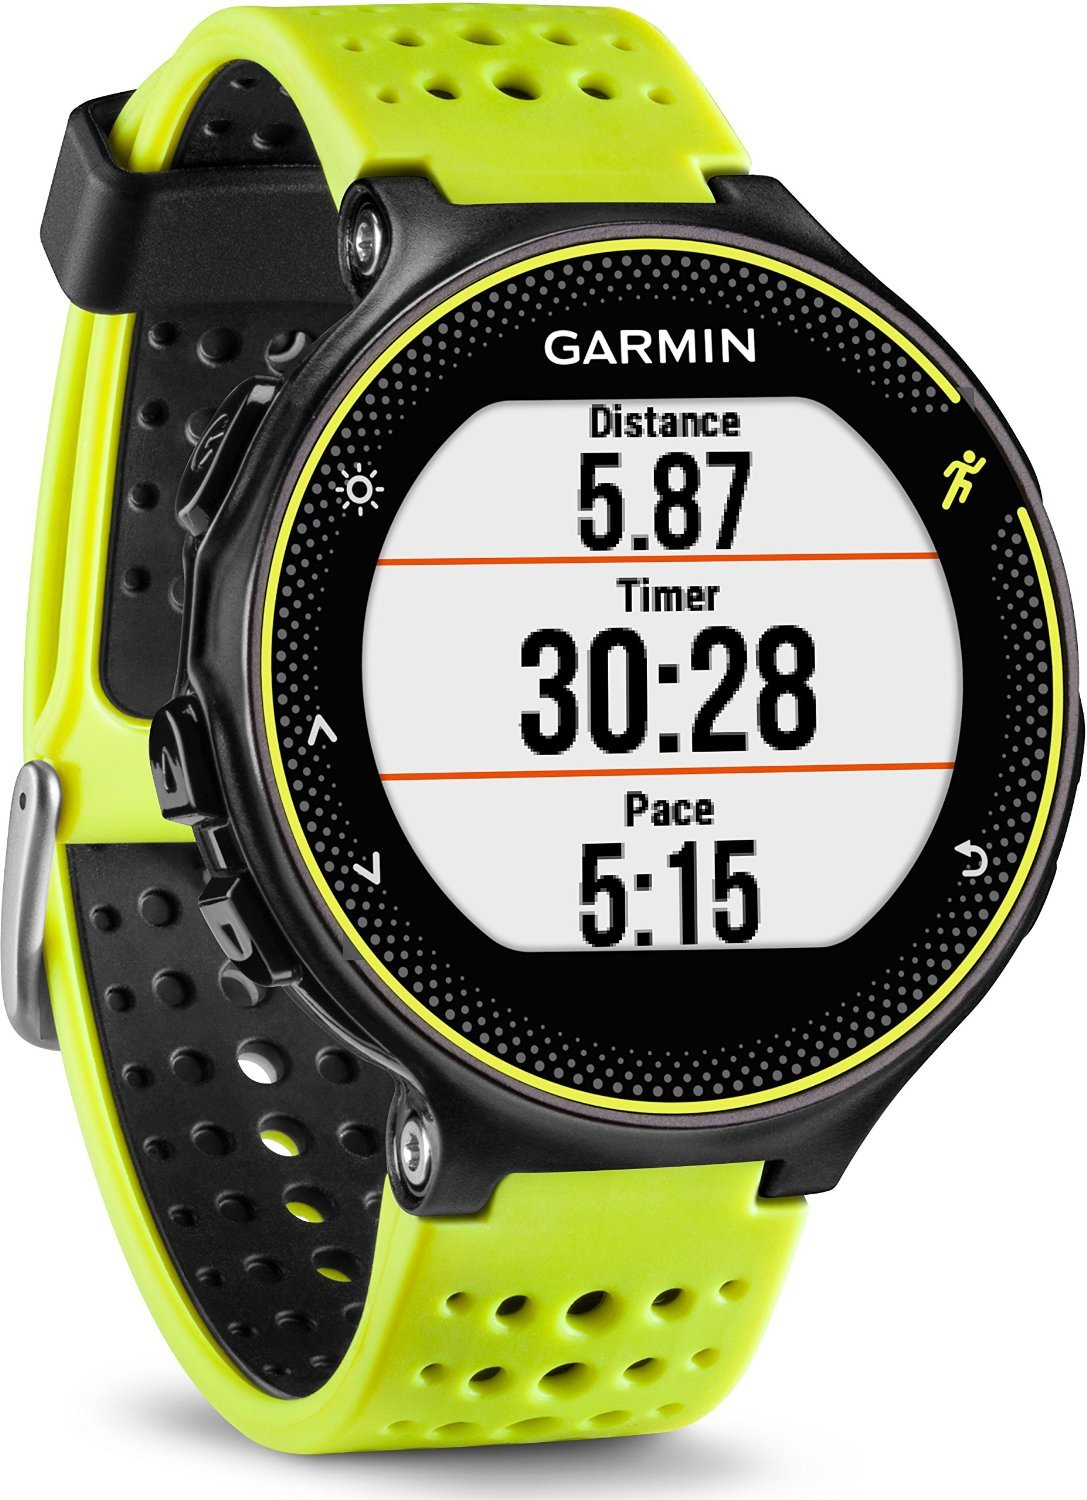 garmin forerunner 230 schwarz gelb test pulsmesser. Black Bedroom Furniture Sets. Home Design Ideas